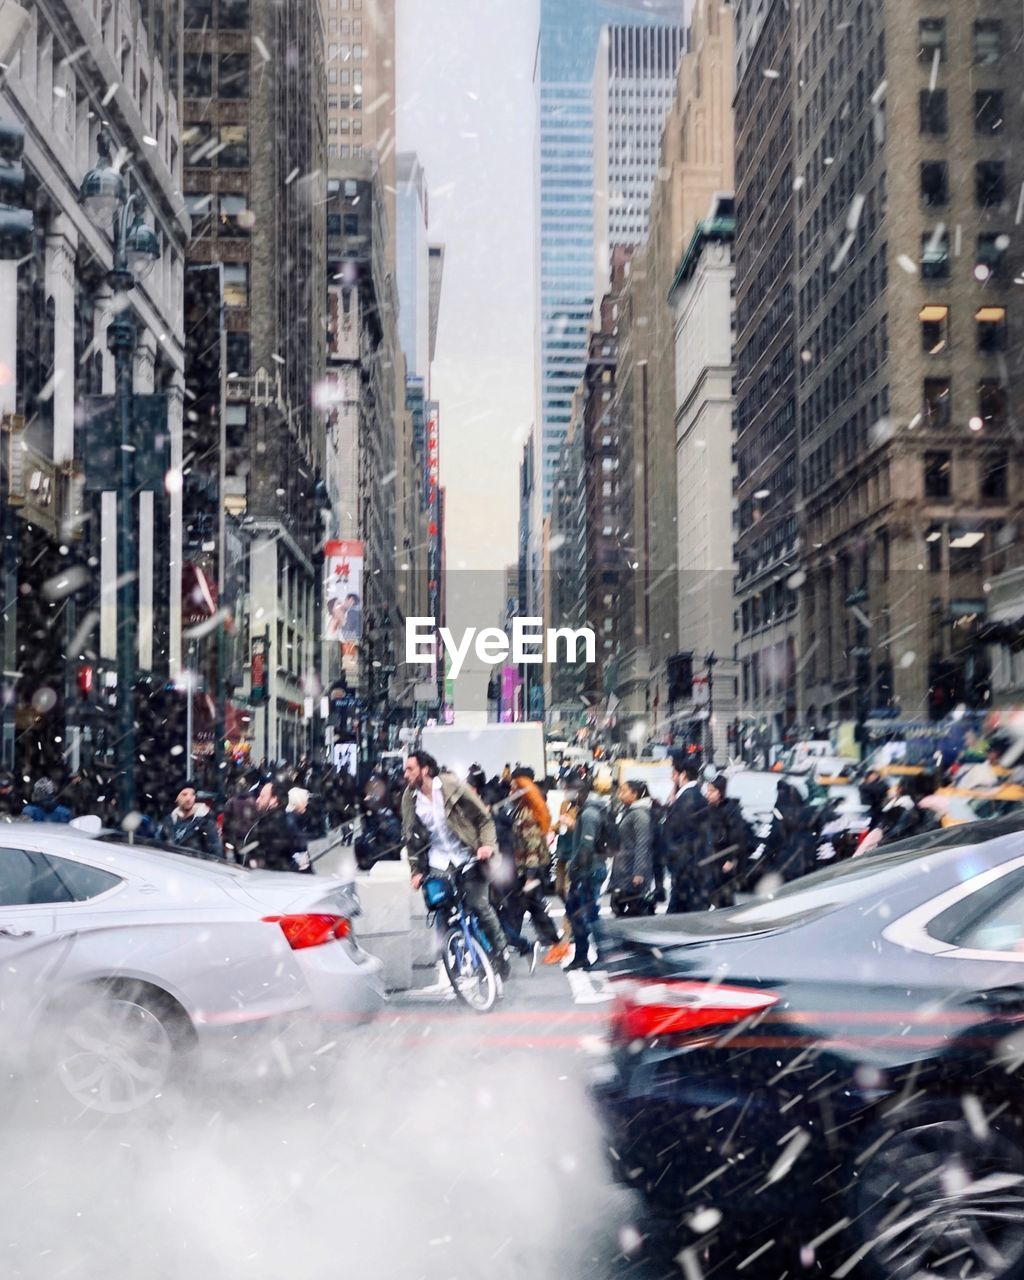 city, architecture, street, motion, transportation, car, building exterior, motor vehicle, mode of transportation, built structure, city life, traffic, on the move, blurred motion, road, crowd, people, city street, building, speed, outdoors, snowing, office building exterior, busy, skyscraper